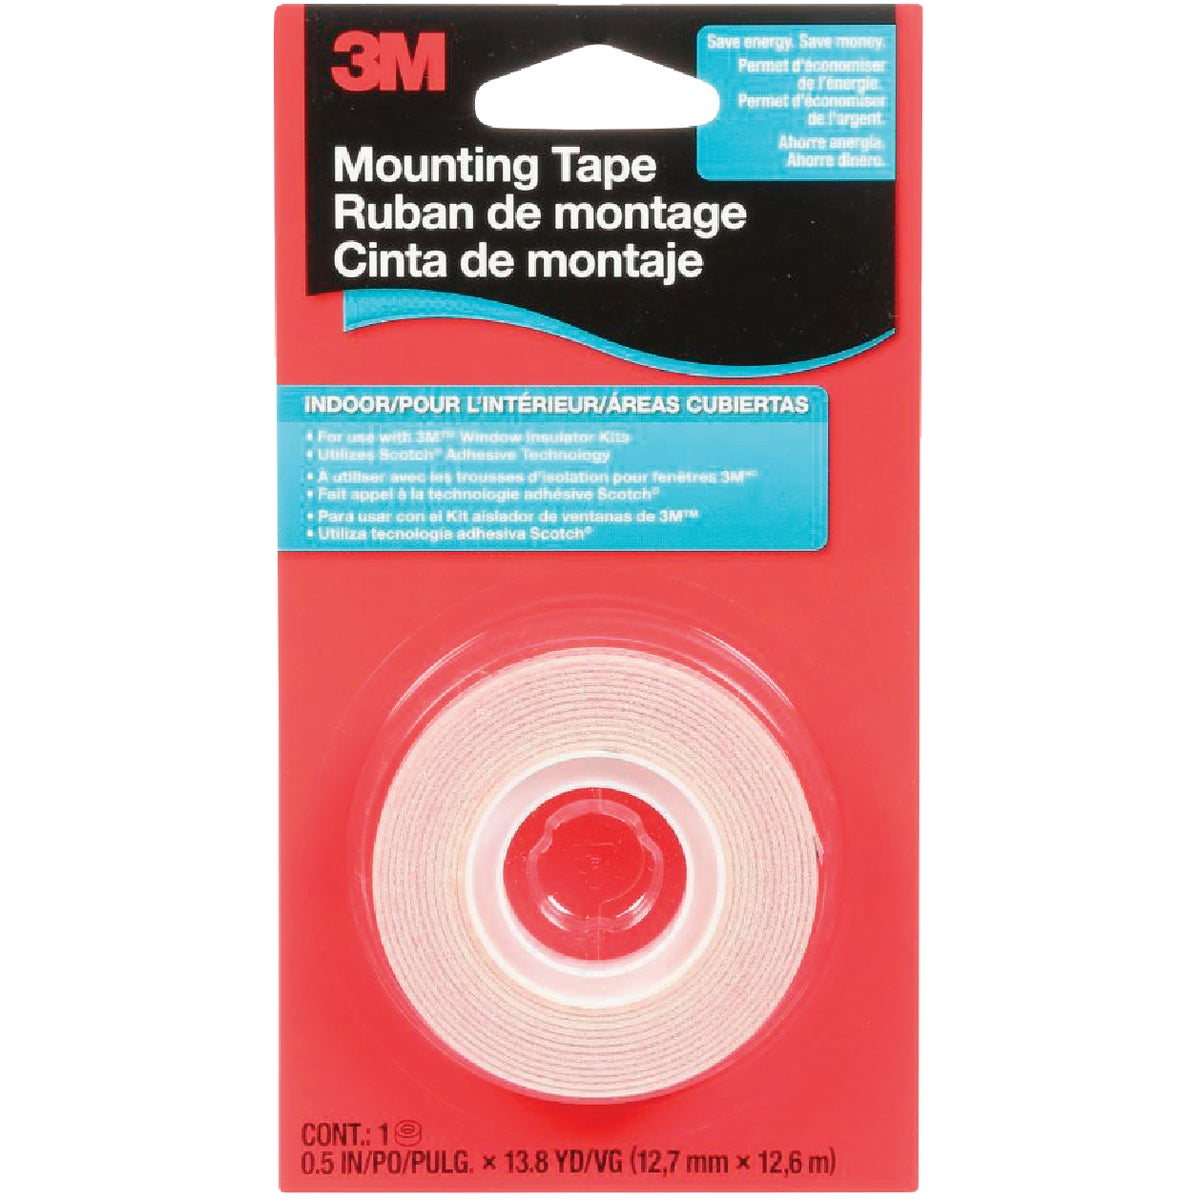 1/2X500 WINDOW FILM TAPE - 2145C by 3m Co